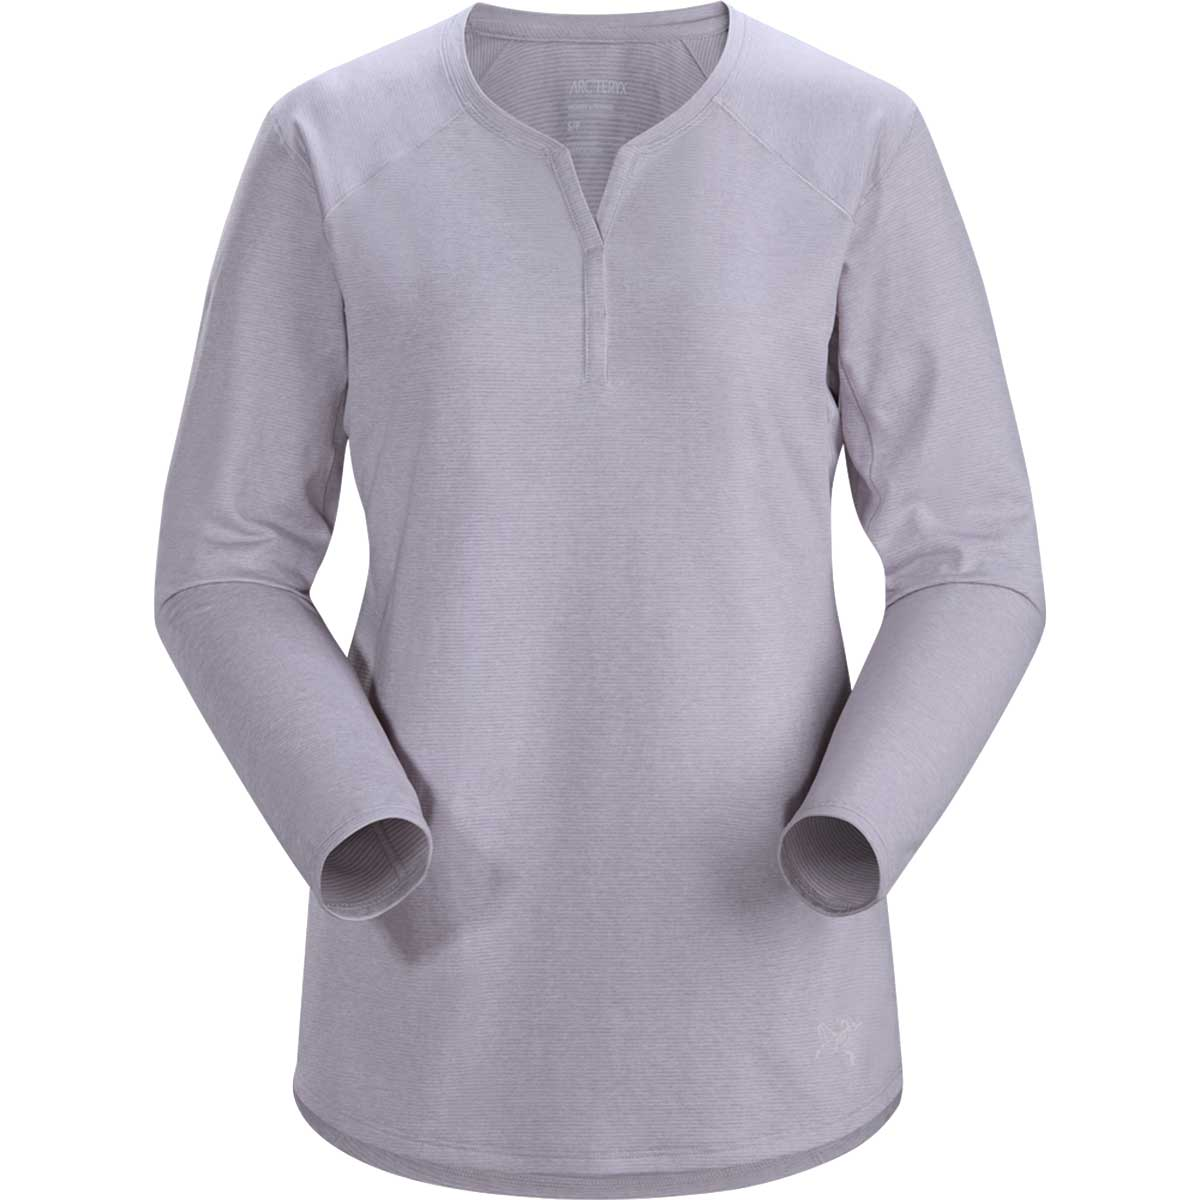 Arcteryx women's Kadem Long-Sleeve Top in Synapse front view